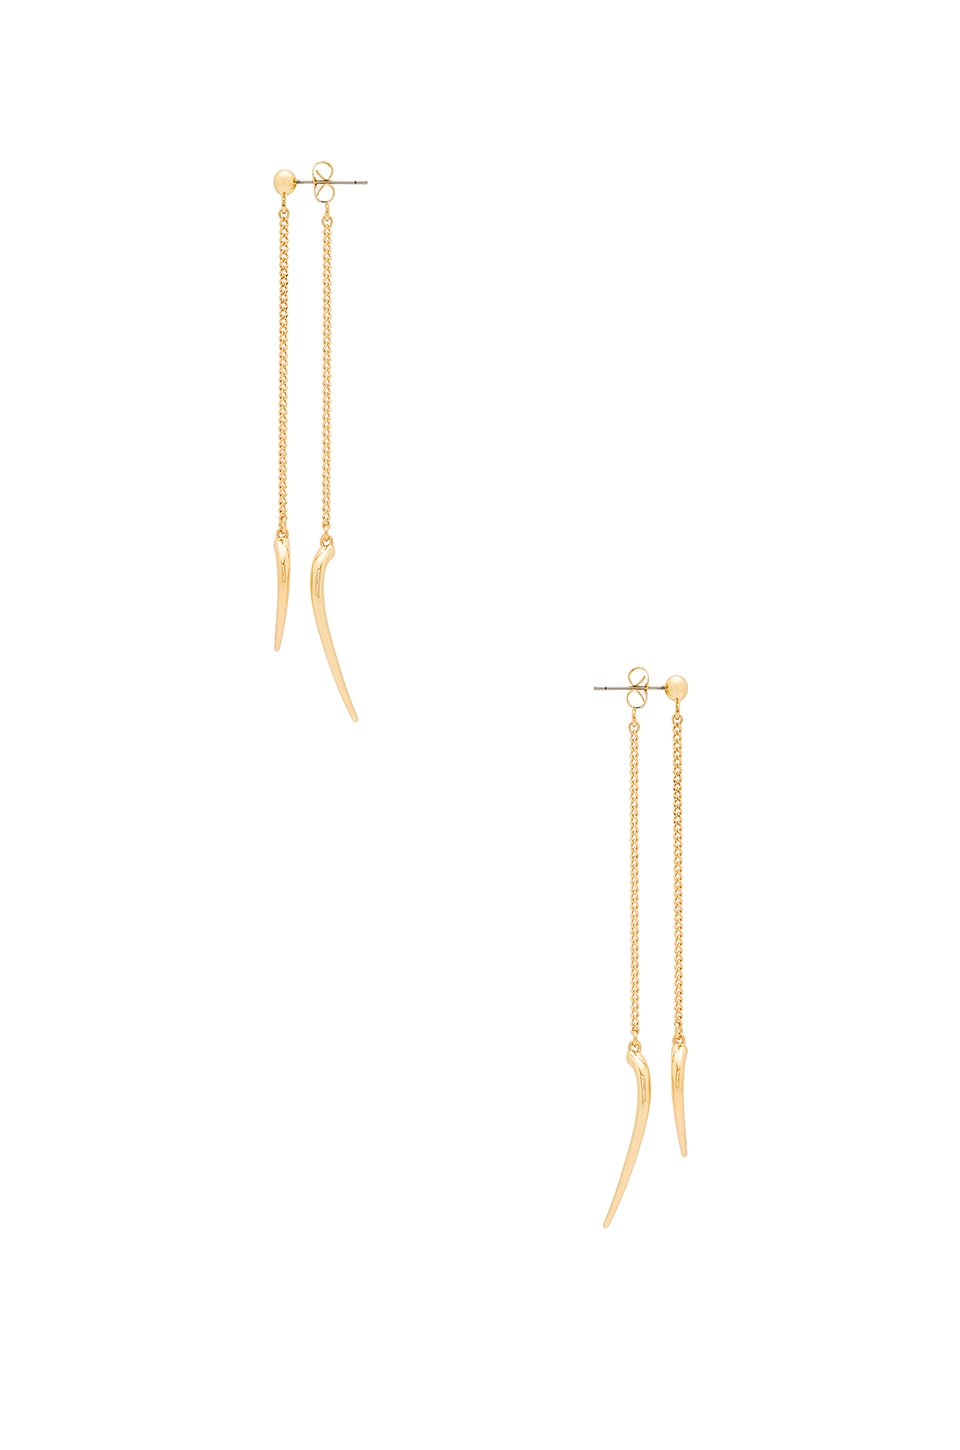 Michelle Campbell Double Talon Drop Earrings in Gold